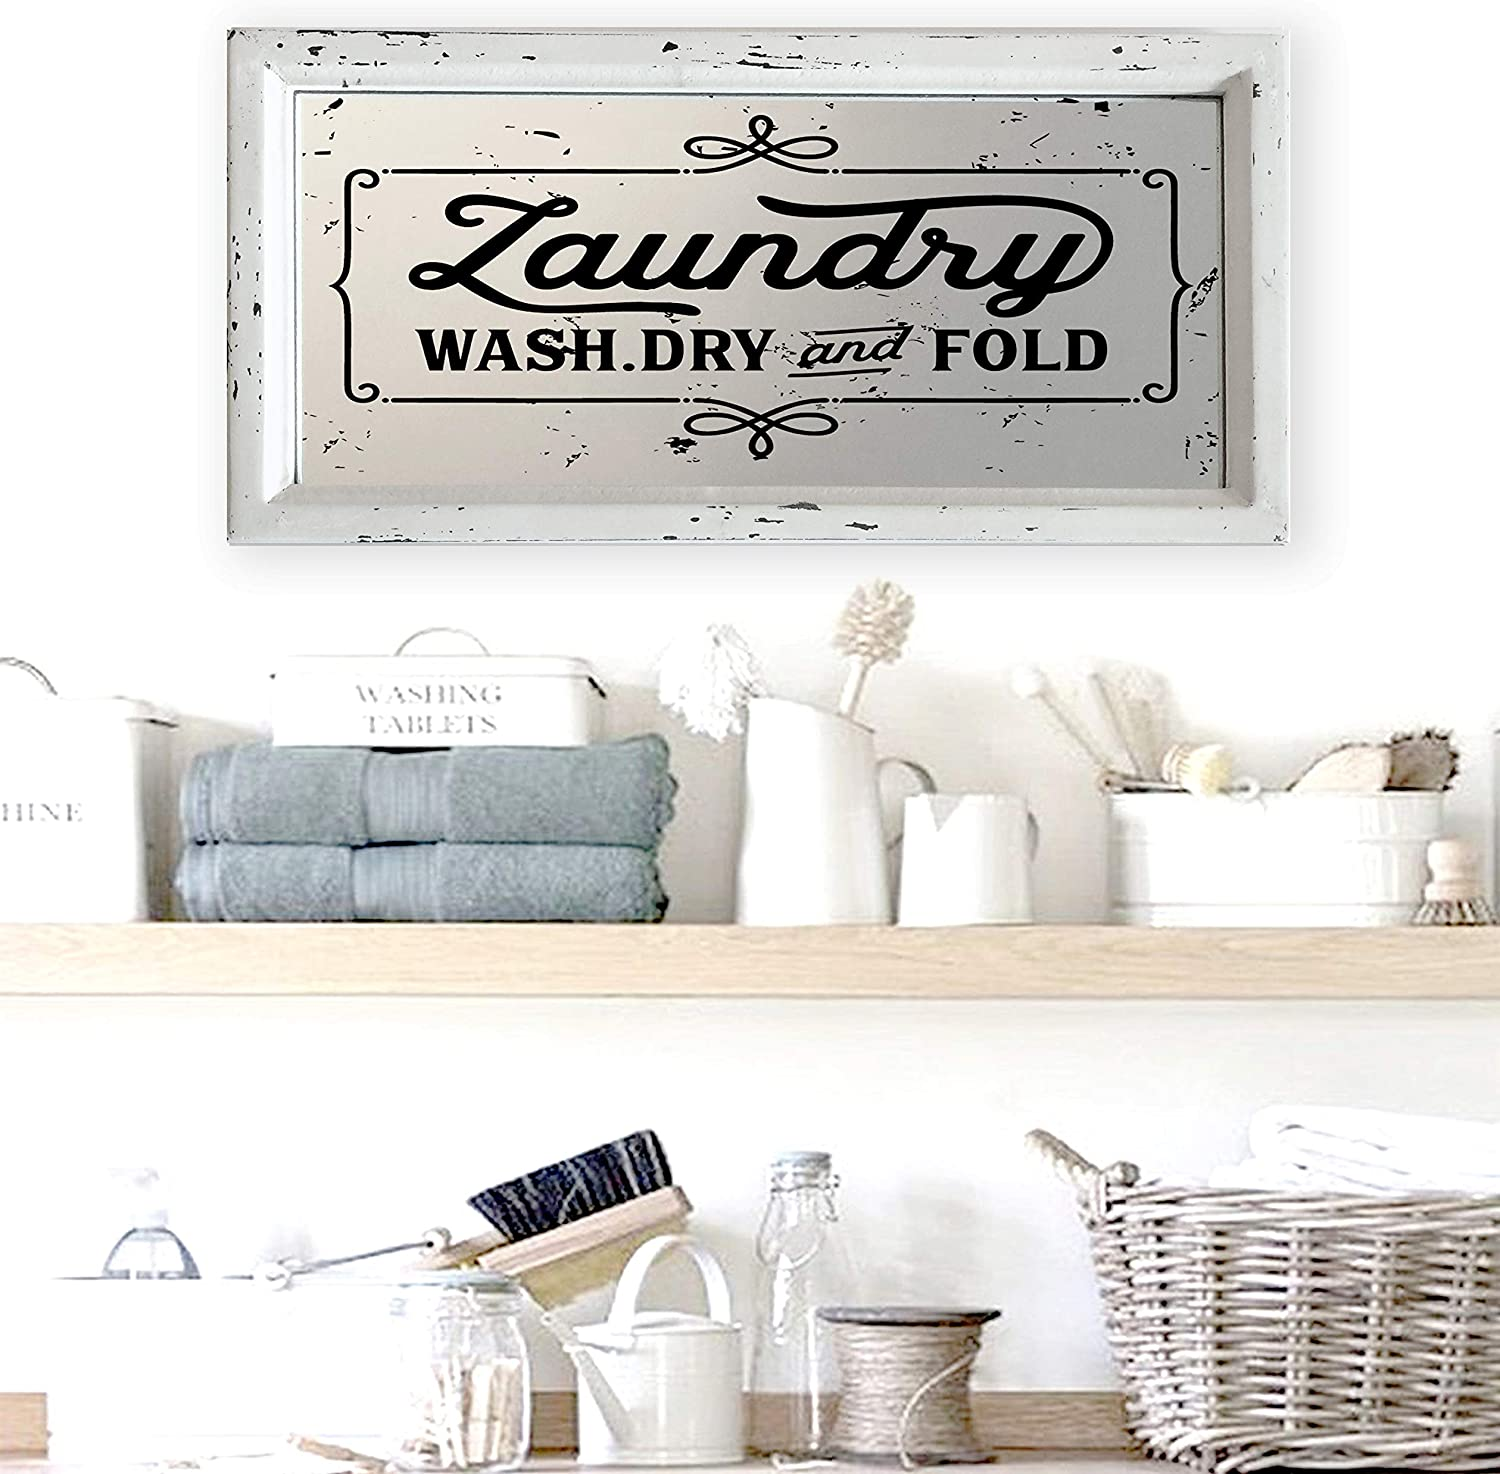 "Teatime Decor Laundry Room Sign I Distressed Finish on Wood Framed Mirror, 16.5"" x 8.25"""